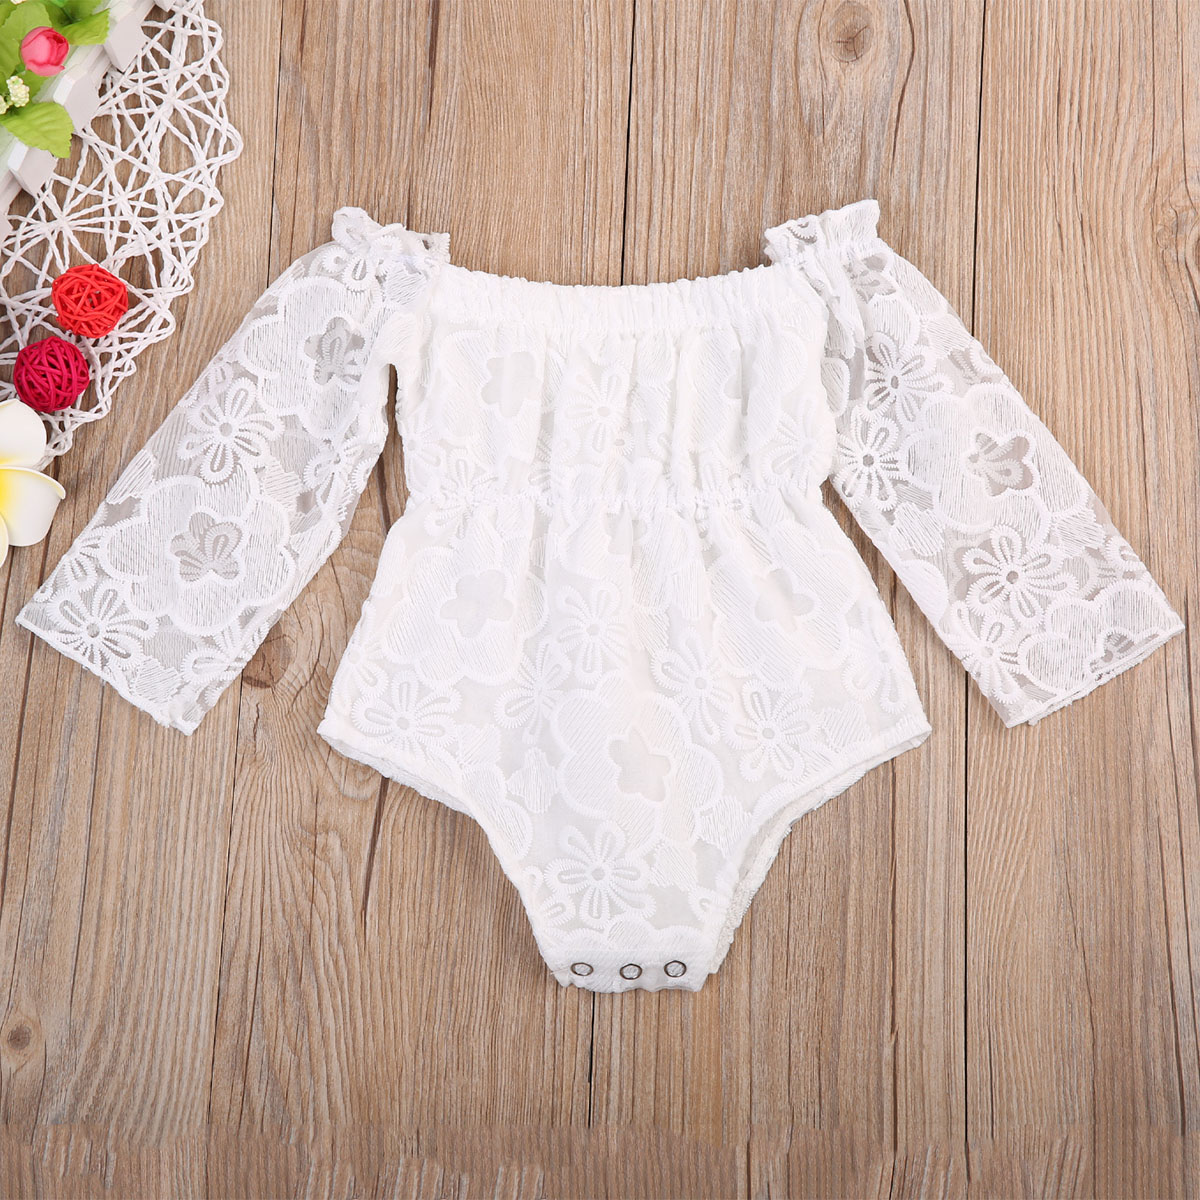 Adorable Summer Newborn Toddler Baby Girl's Clothes Lace Romper Jumpsuit Playsuit Sunsuit Infant Kids Girls Outfits 0-24M summer newborn infant baby girl romper short sleeve floral romper jumpsuit outfits sunsuit clothes